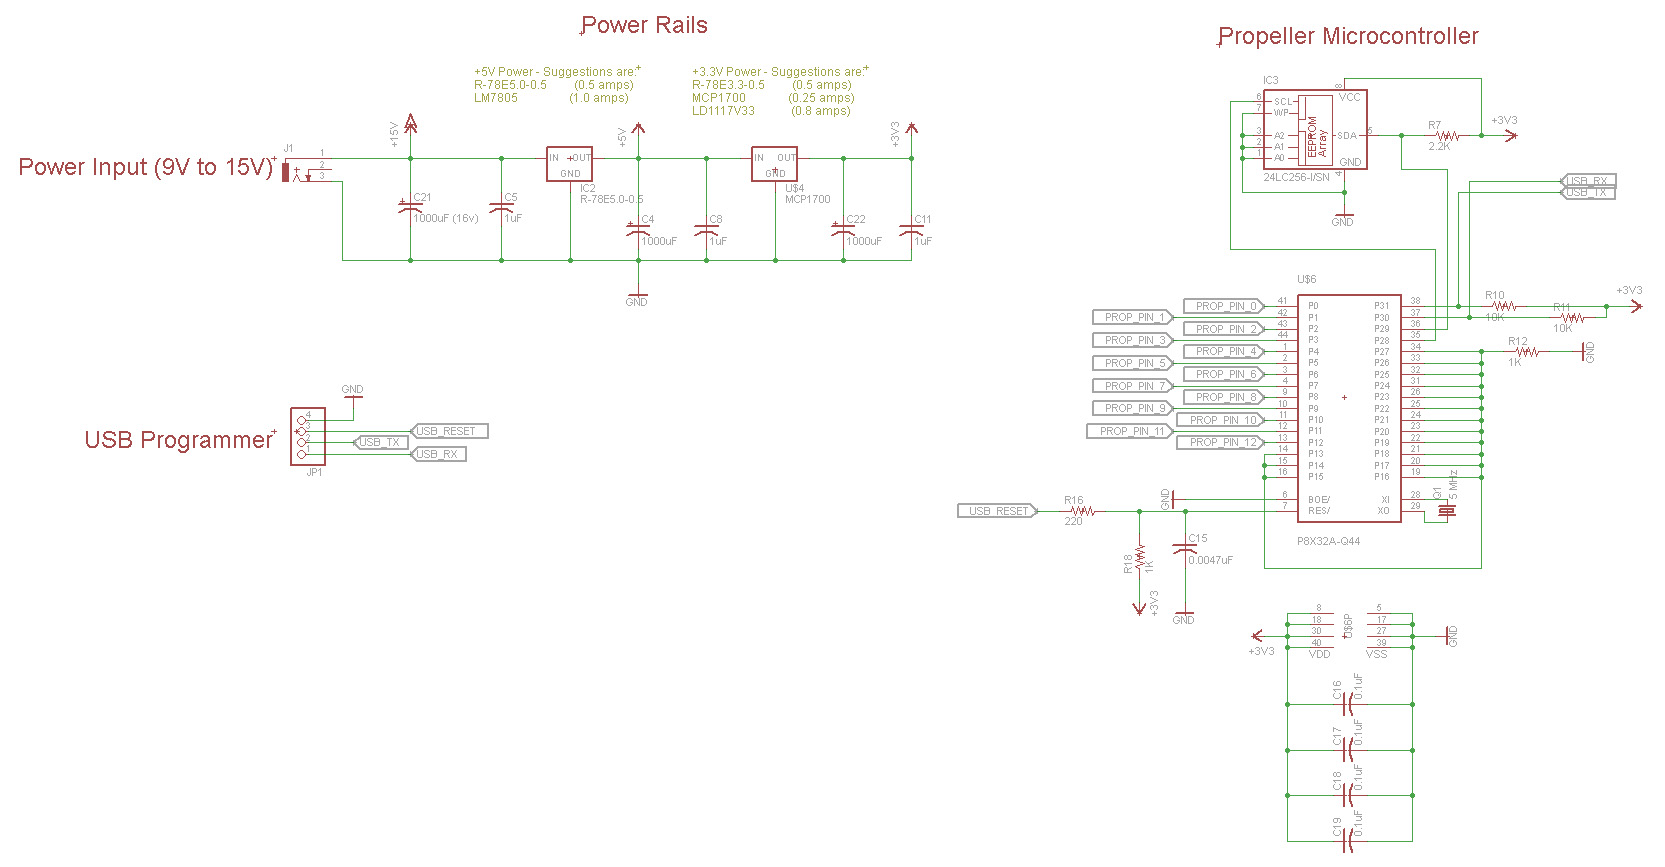 propeller circuit template and best practices  u2014 parallax forums